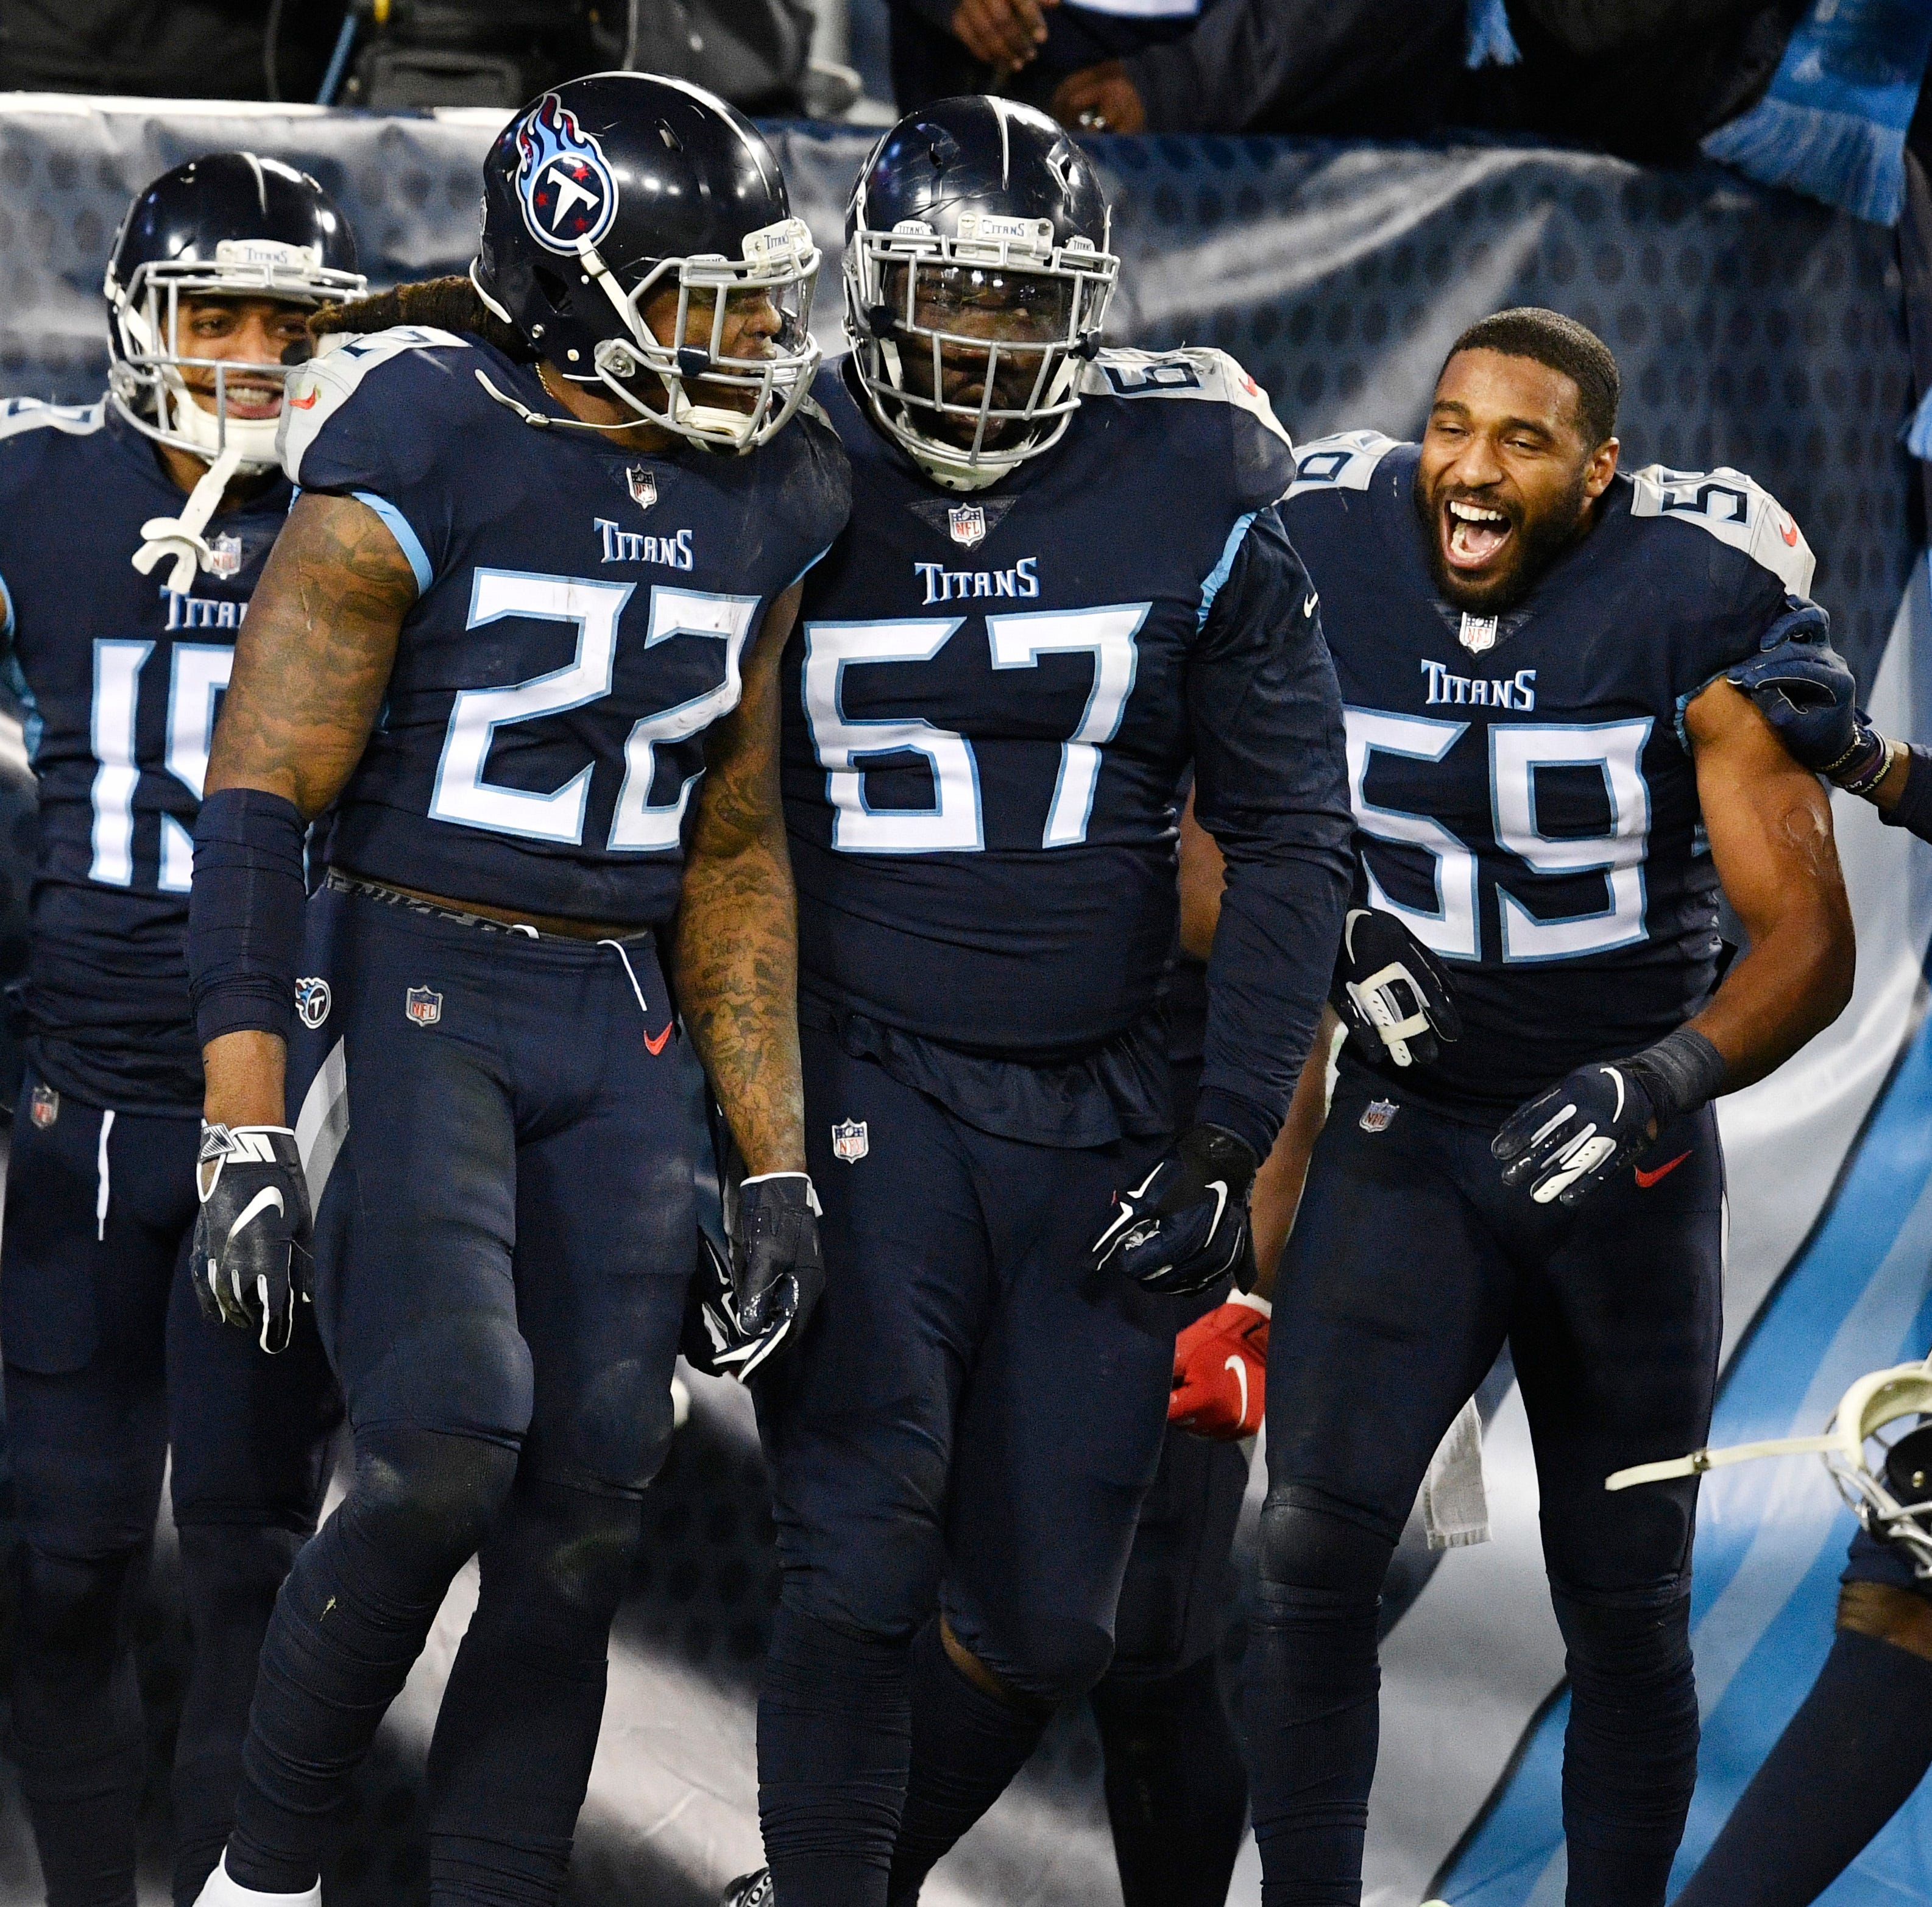 Tennessee Titans clobber Jacksonville Jaguars on Derrick Henry's record night